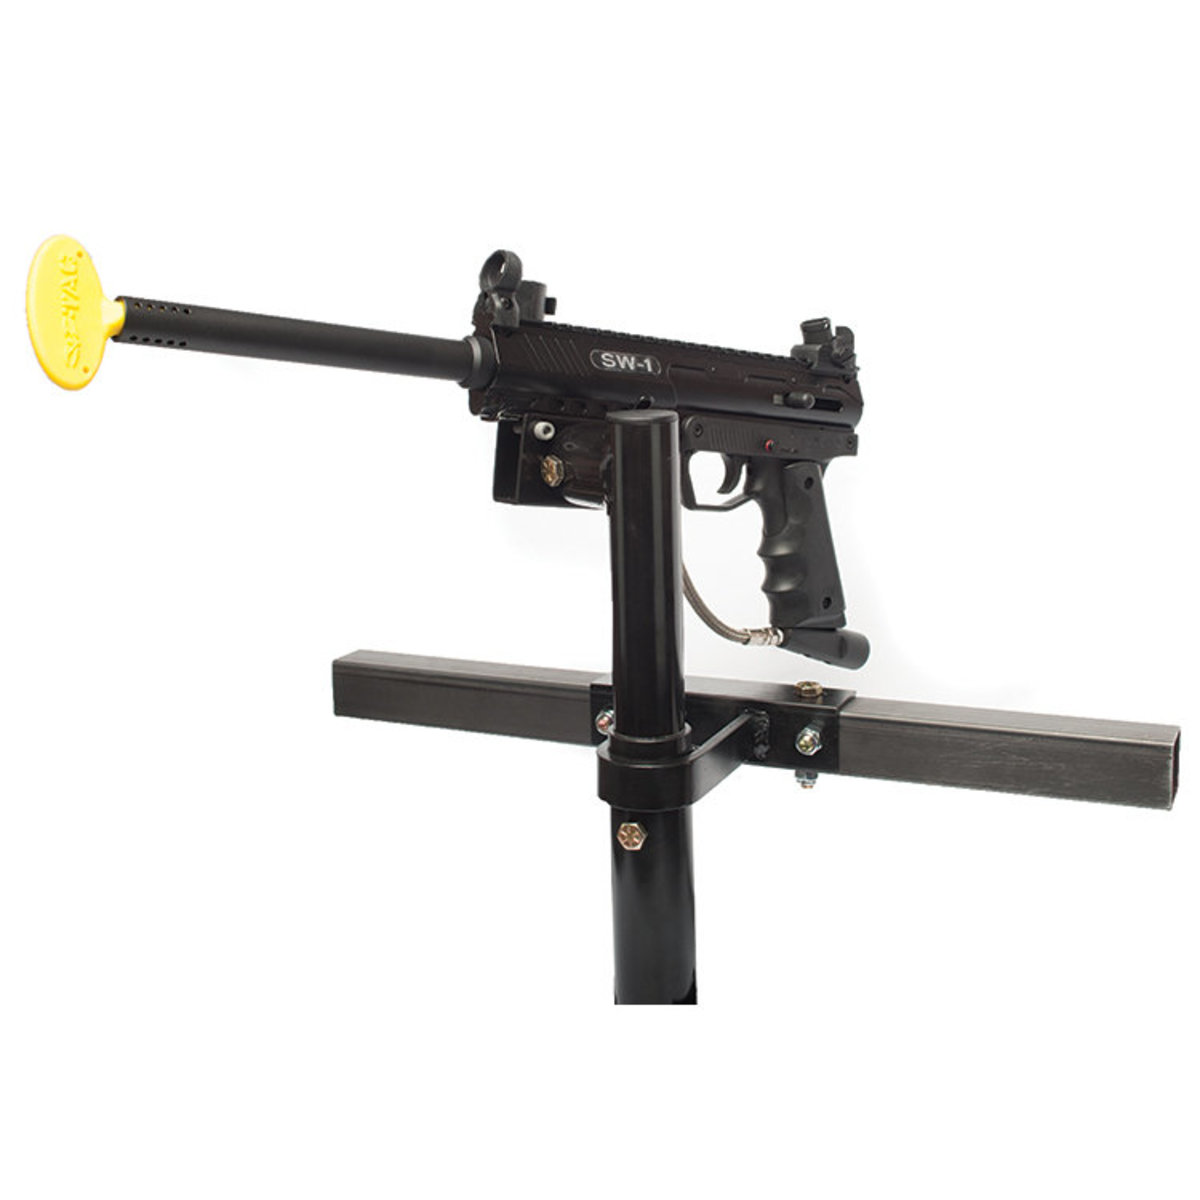 View larger image of Gun Mount Accessory - Fits Bottom Picatinny Rail